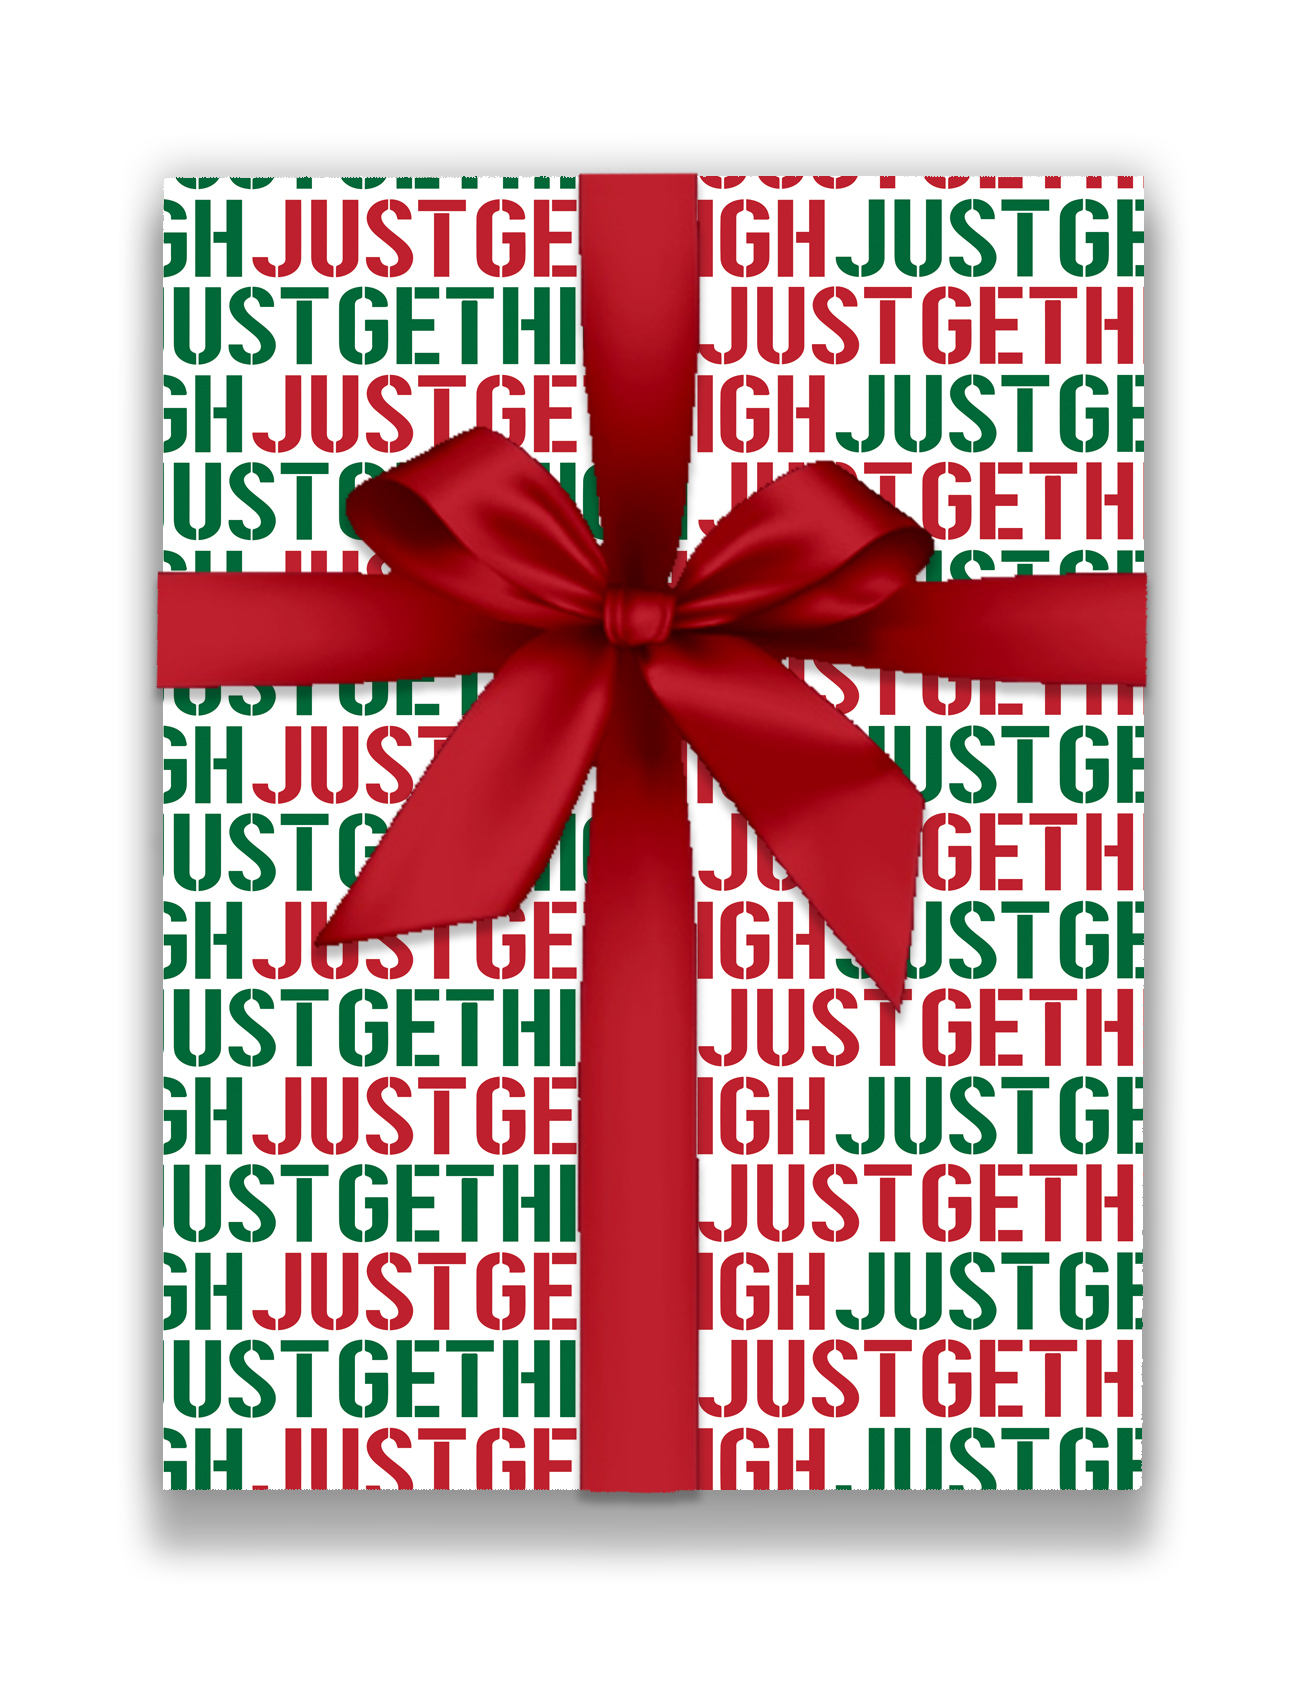 JUST GET HIGH STENCIL_just get high_wraping_RED AND GREEN_WEB